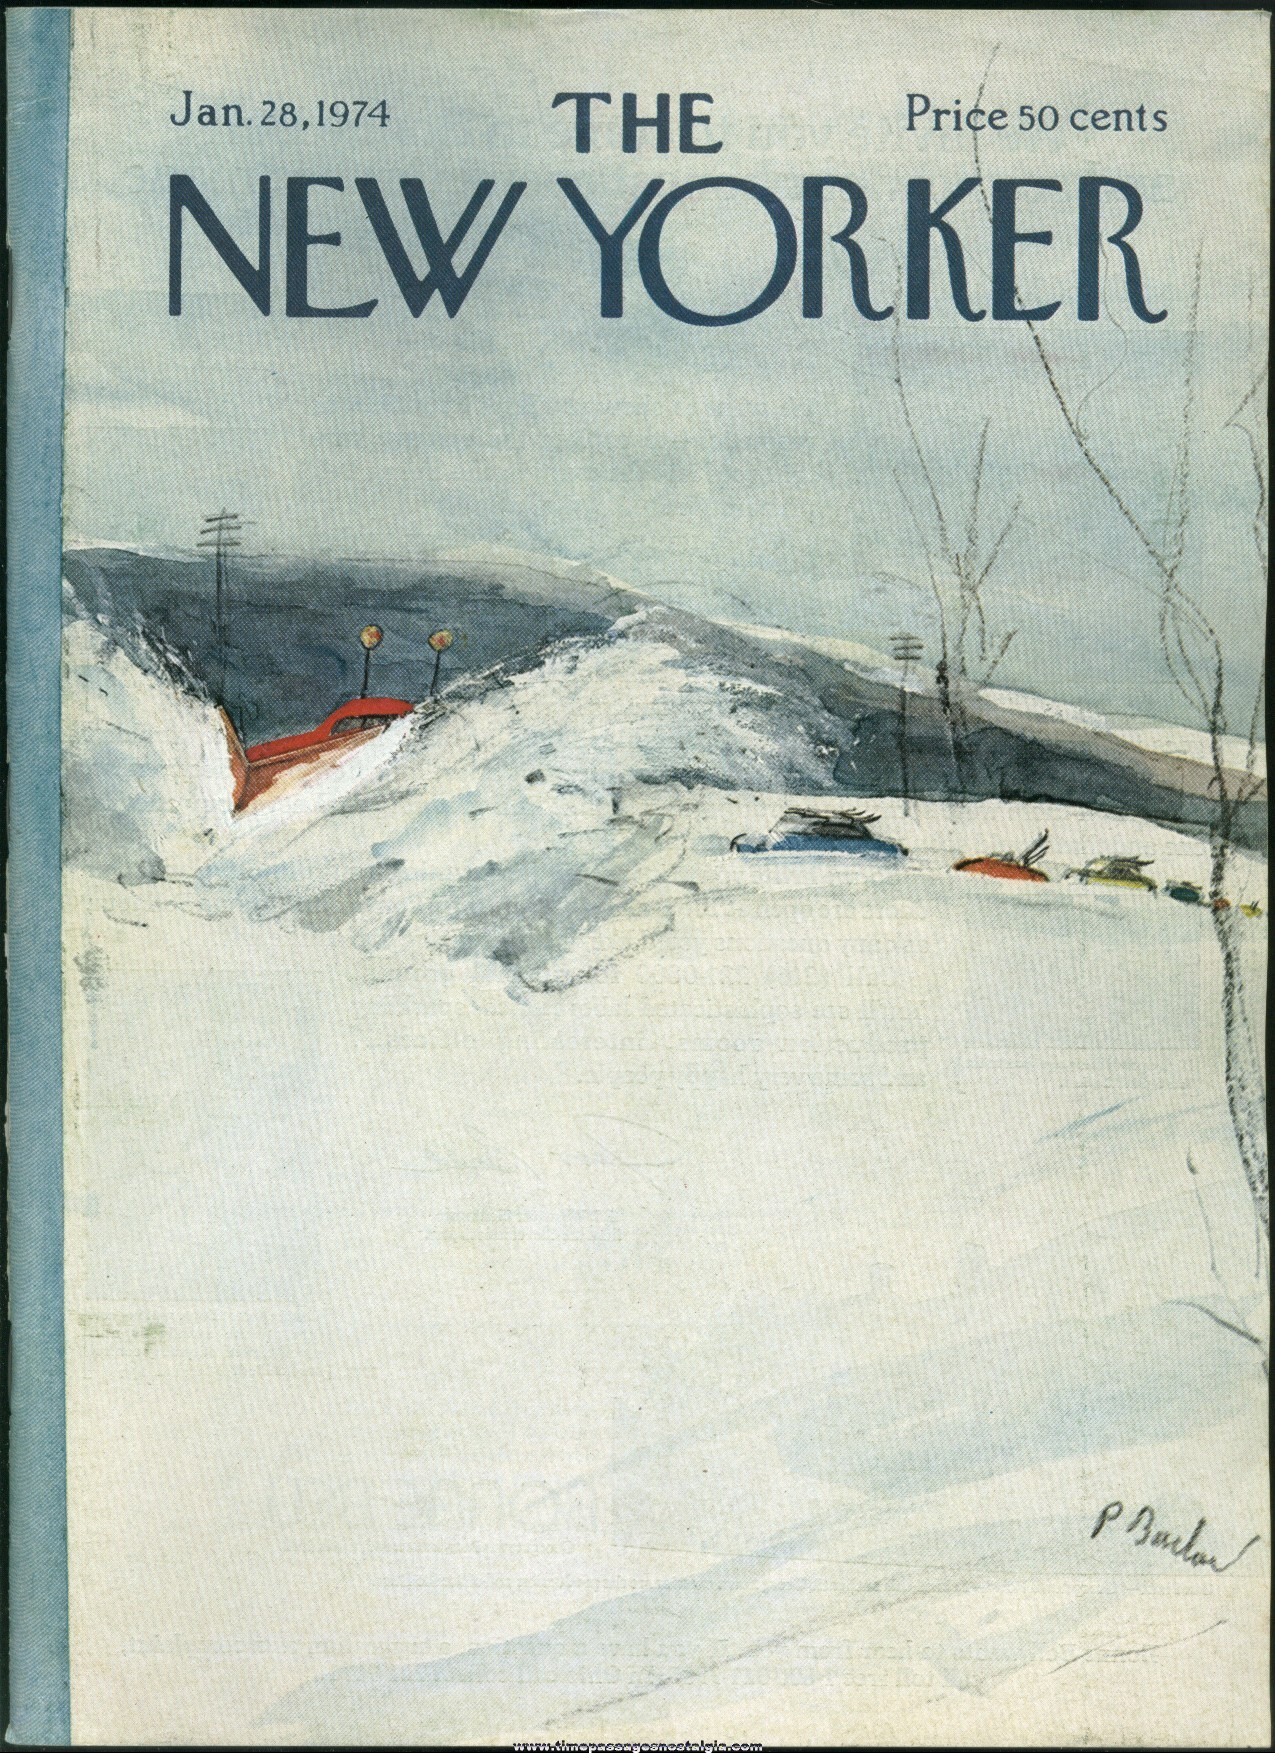 New Yorker Magazine - January 28, 1974 - Cover by Perry Barlow